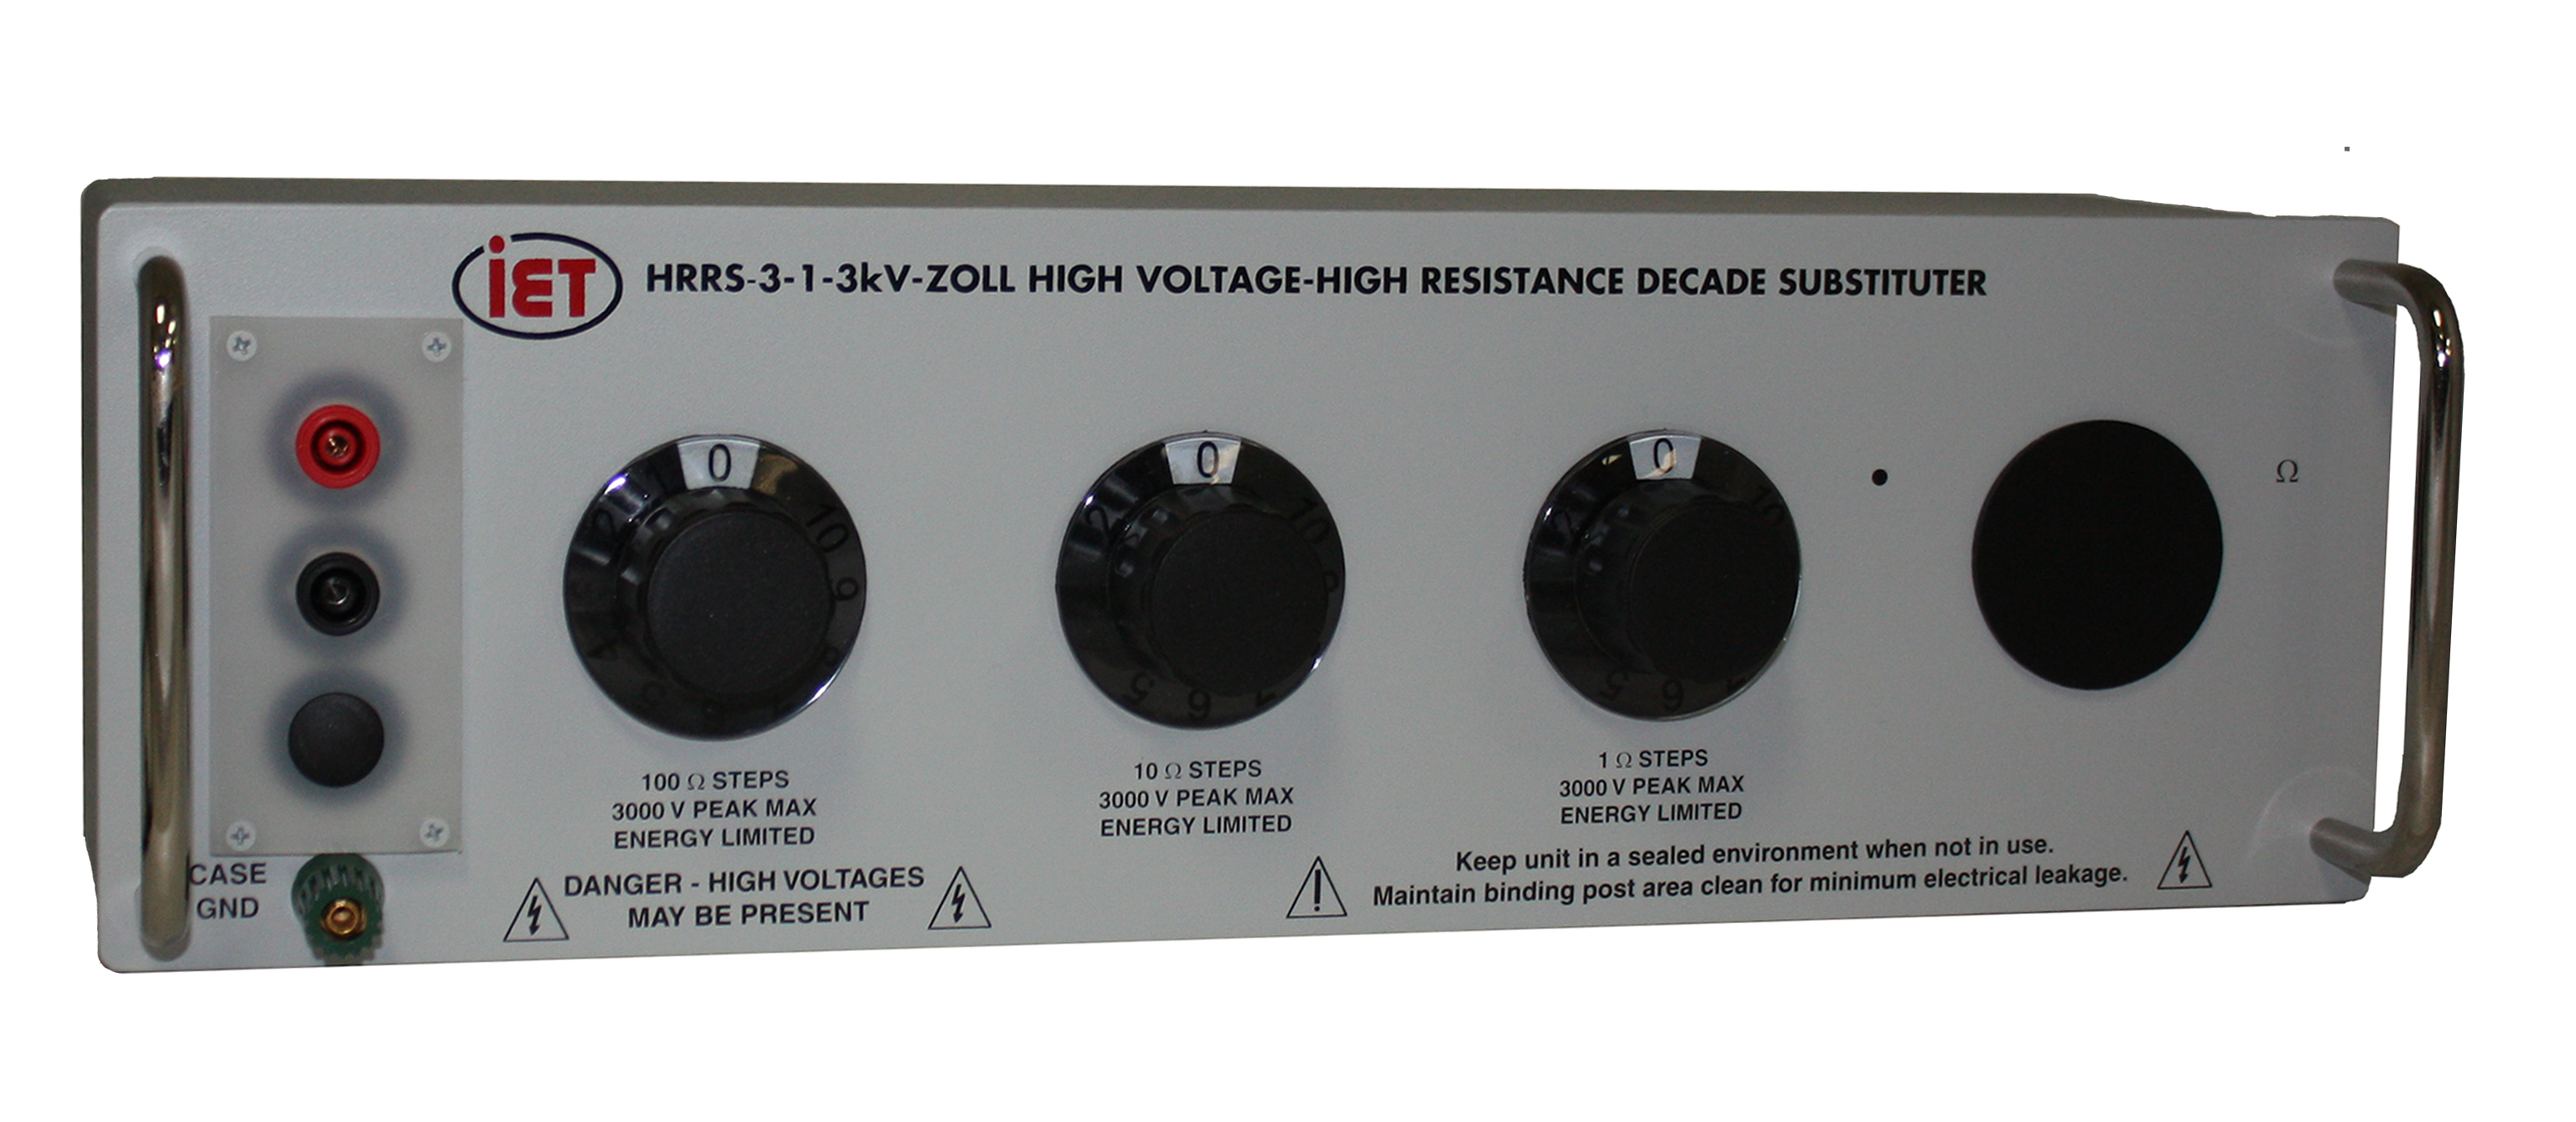 HRRS-Zoll-F-3 Decade Resistor